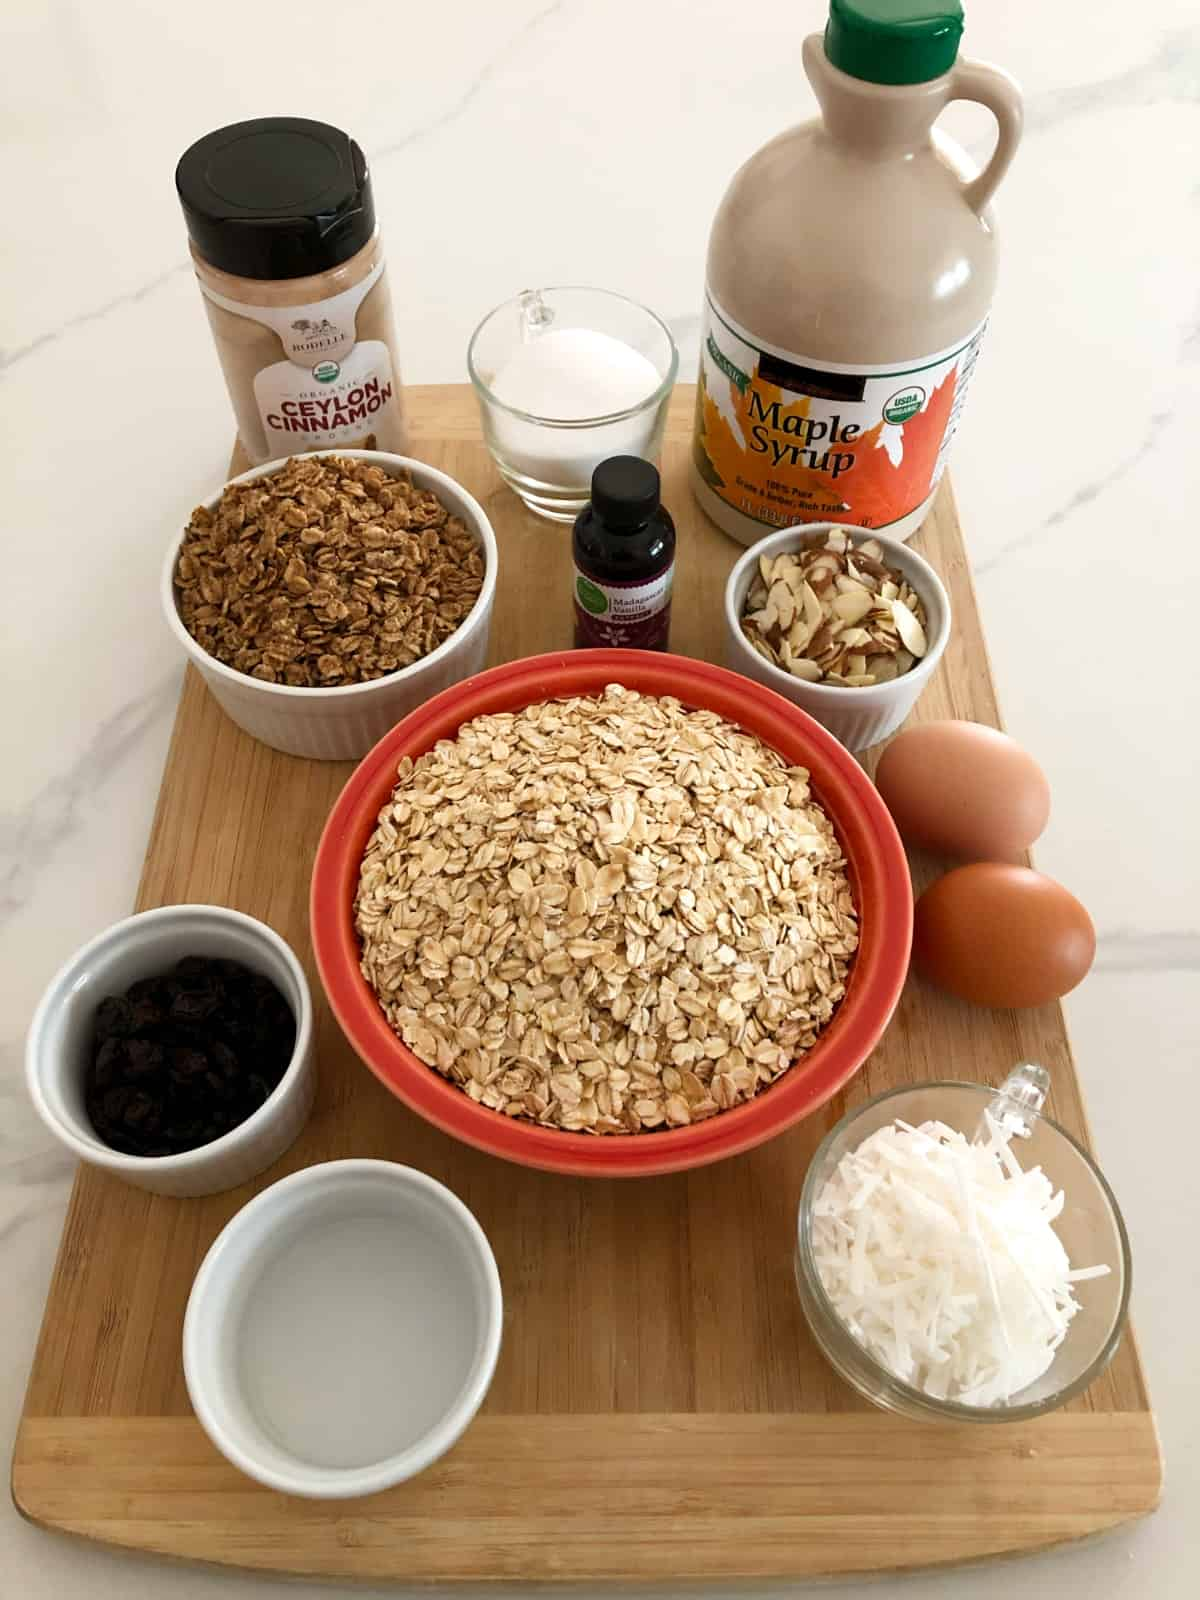 Cinnamon, maple syrup, oats, raisins, eggs, almonds and oil for making homemade granola.